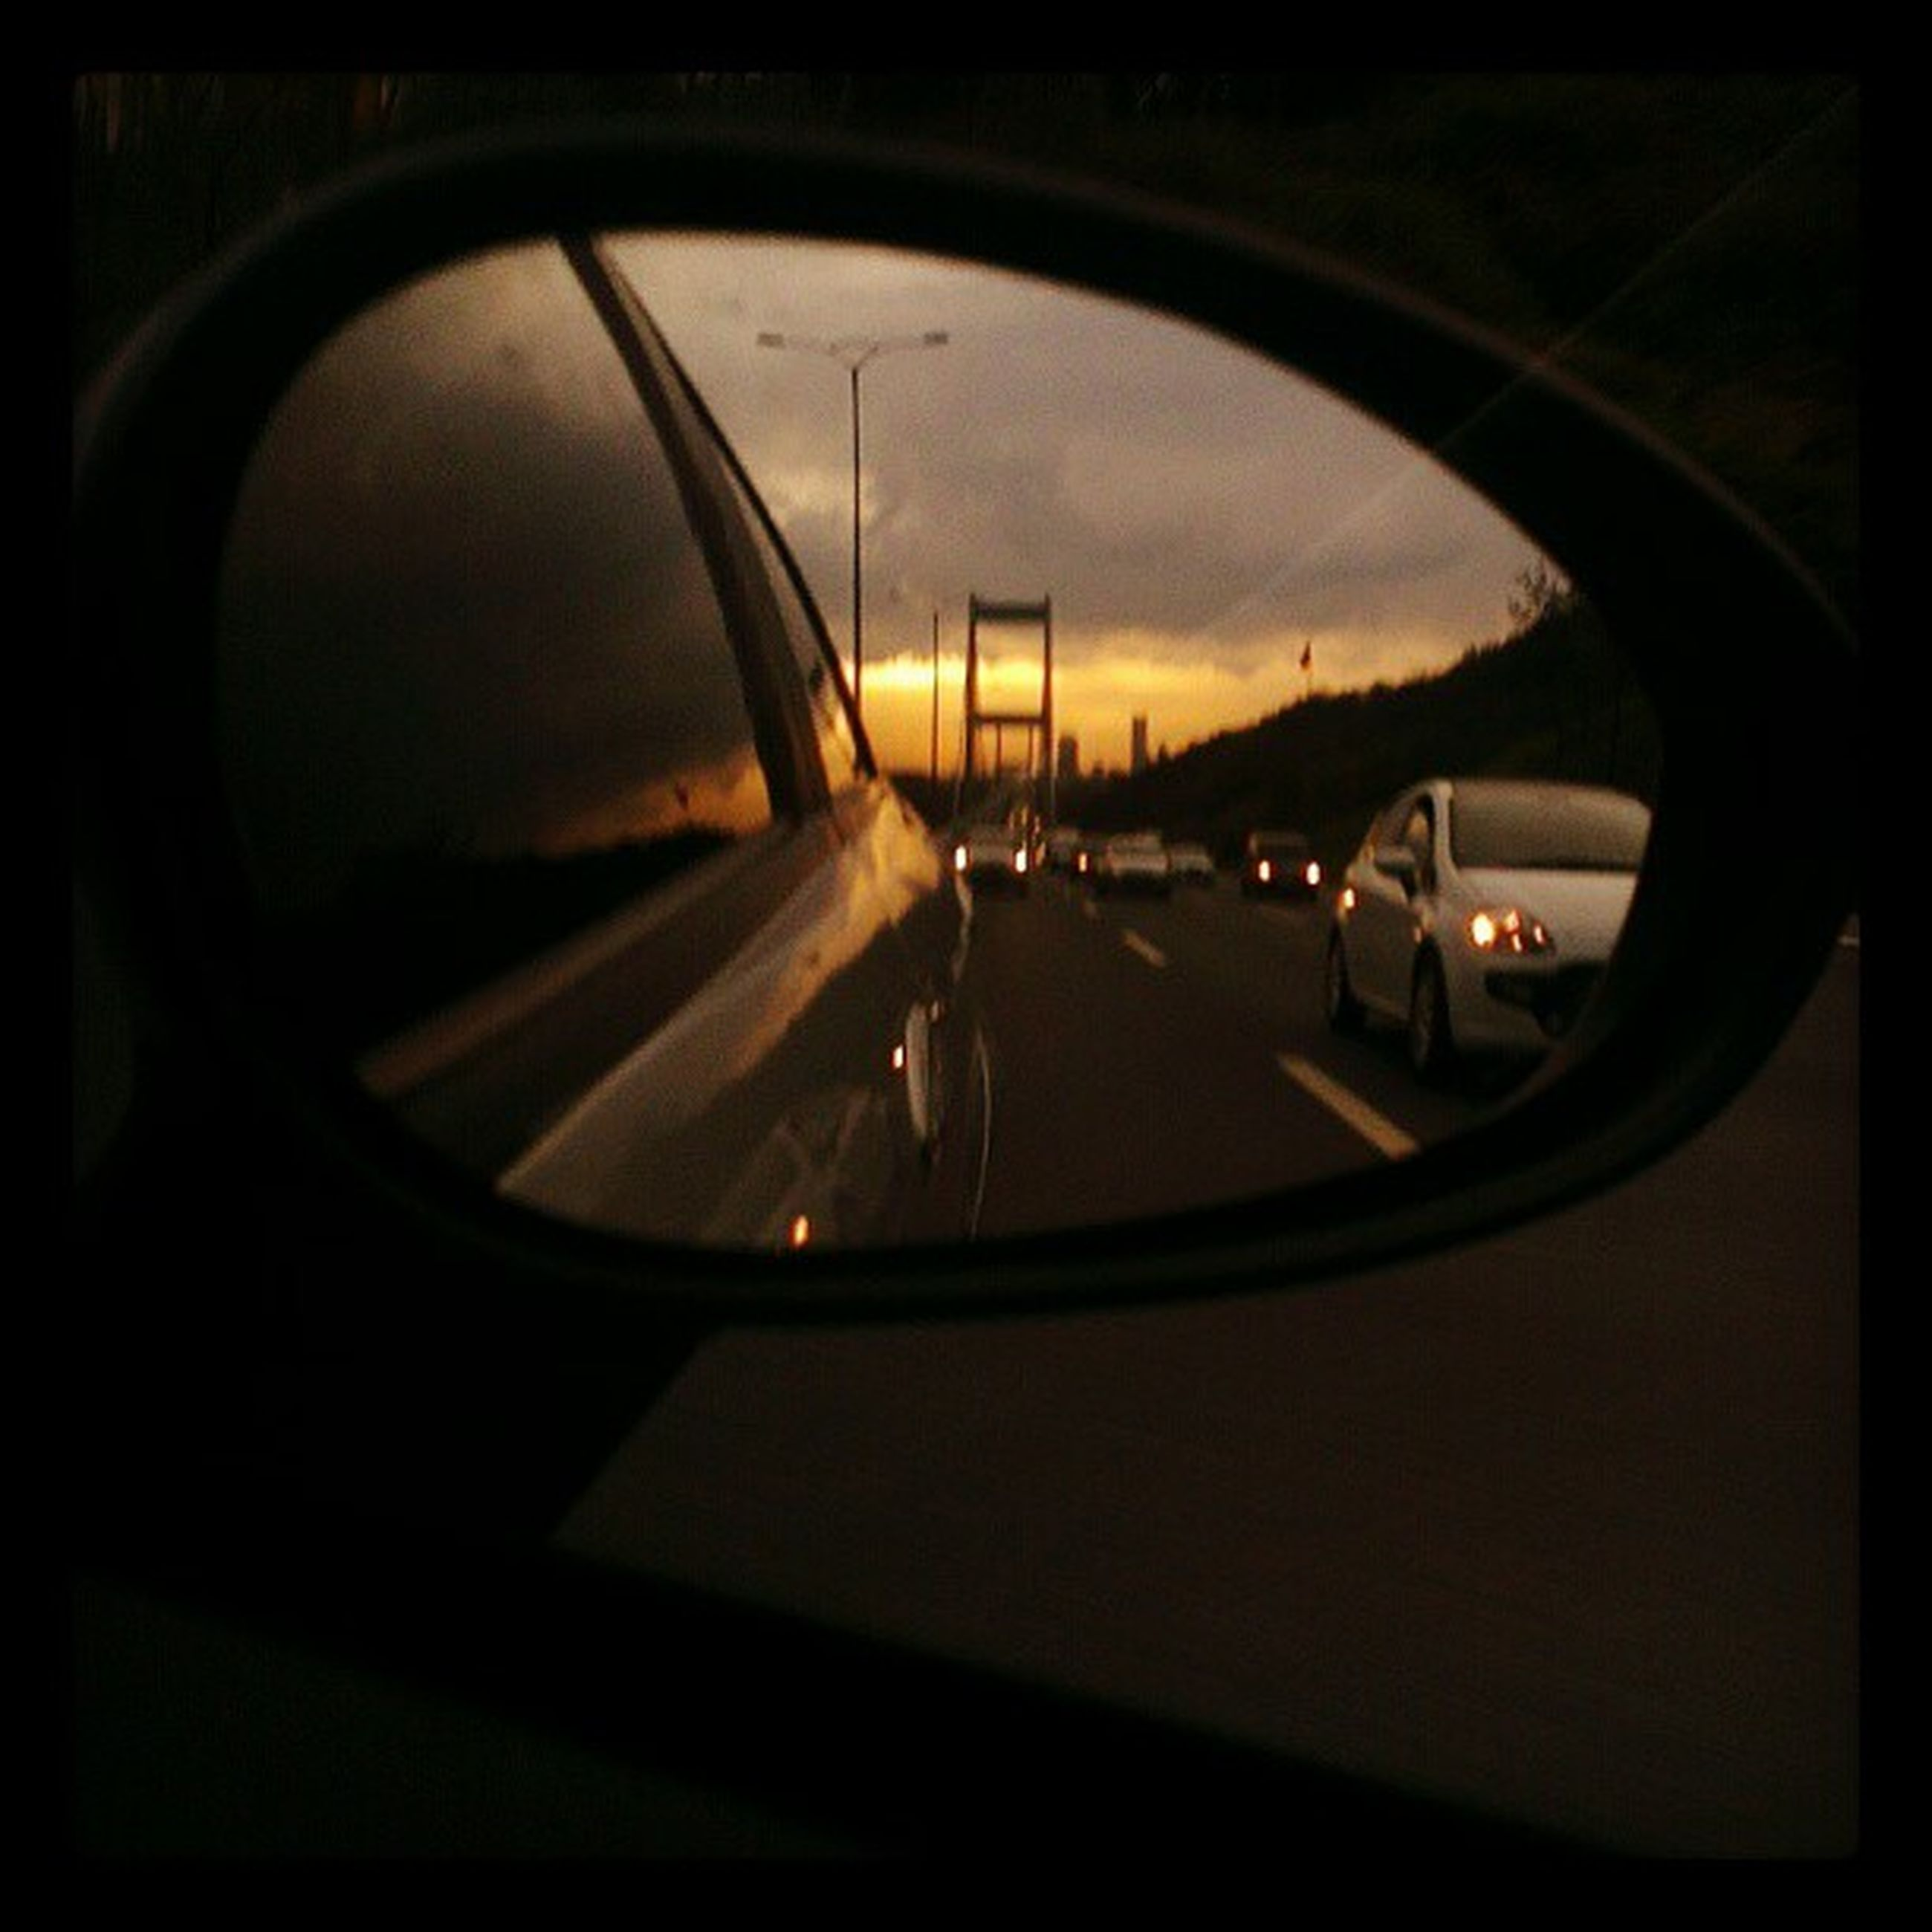 transfer print, transportation, auto post production filter, indoors, mode of transport, reflection, car, sky, window, no people, land vehicle, circle, glass - material, vehicle interior, dark, close-up, sunset, transparent, street, travel